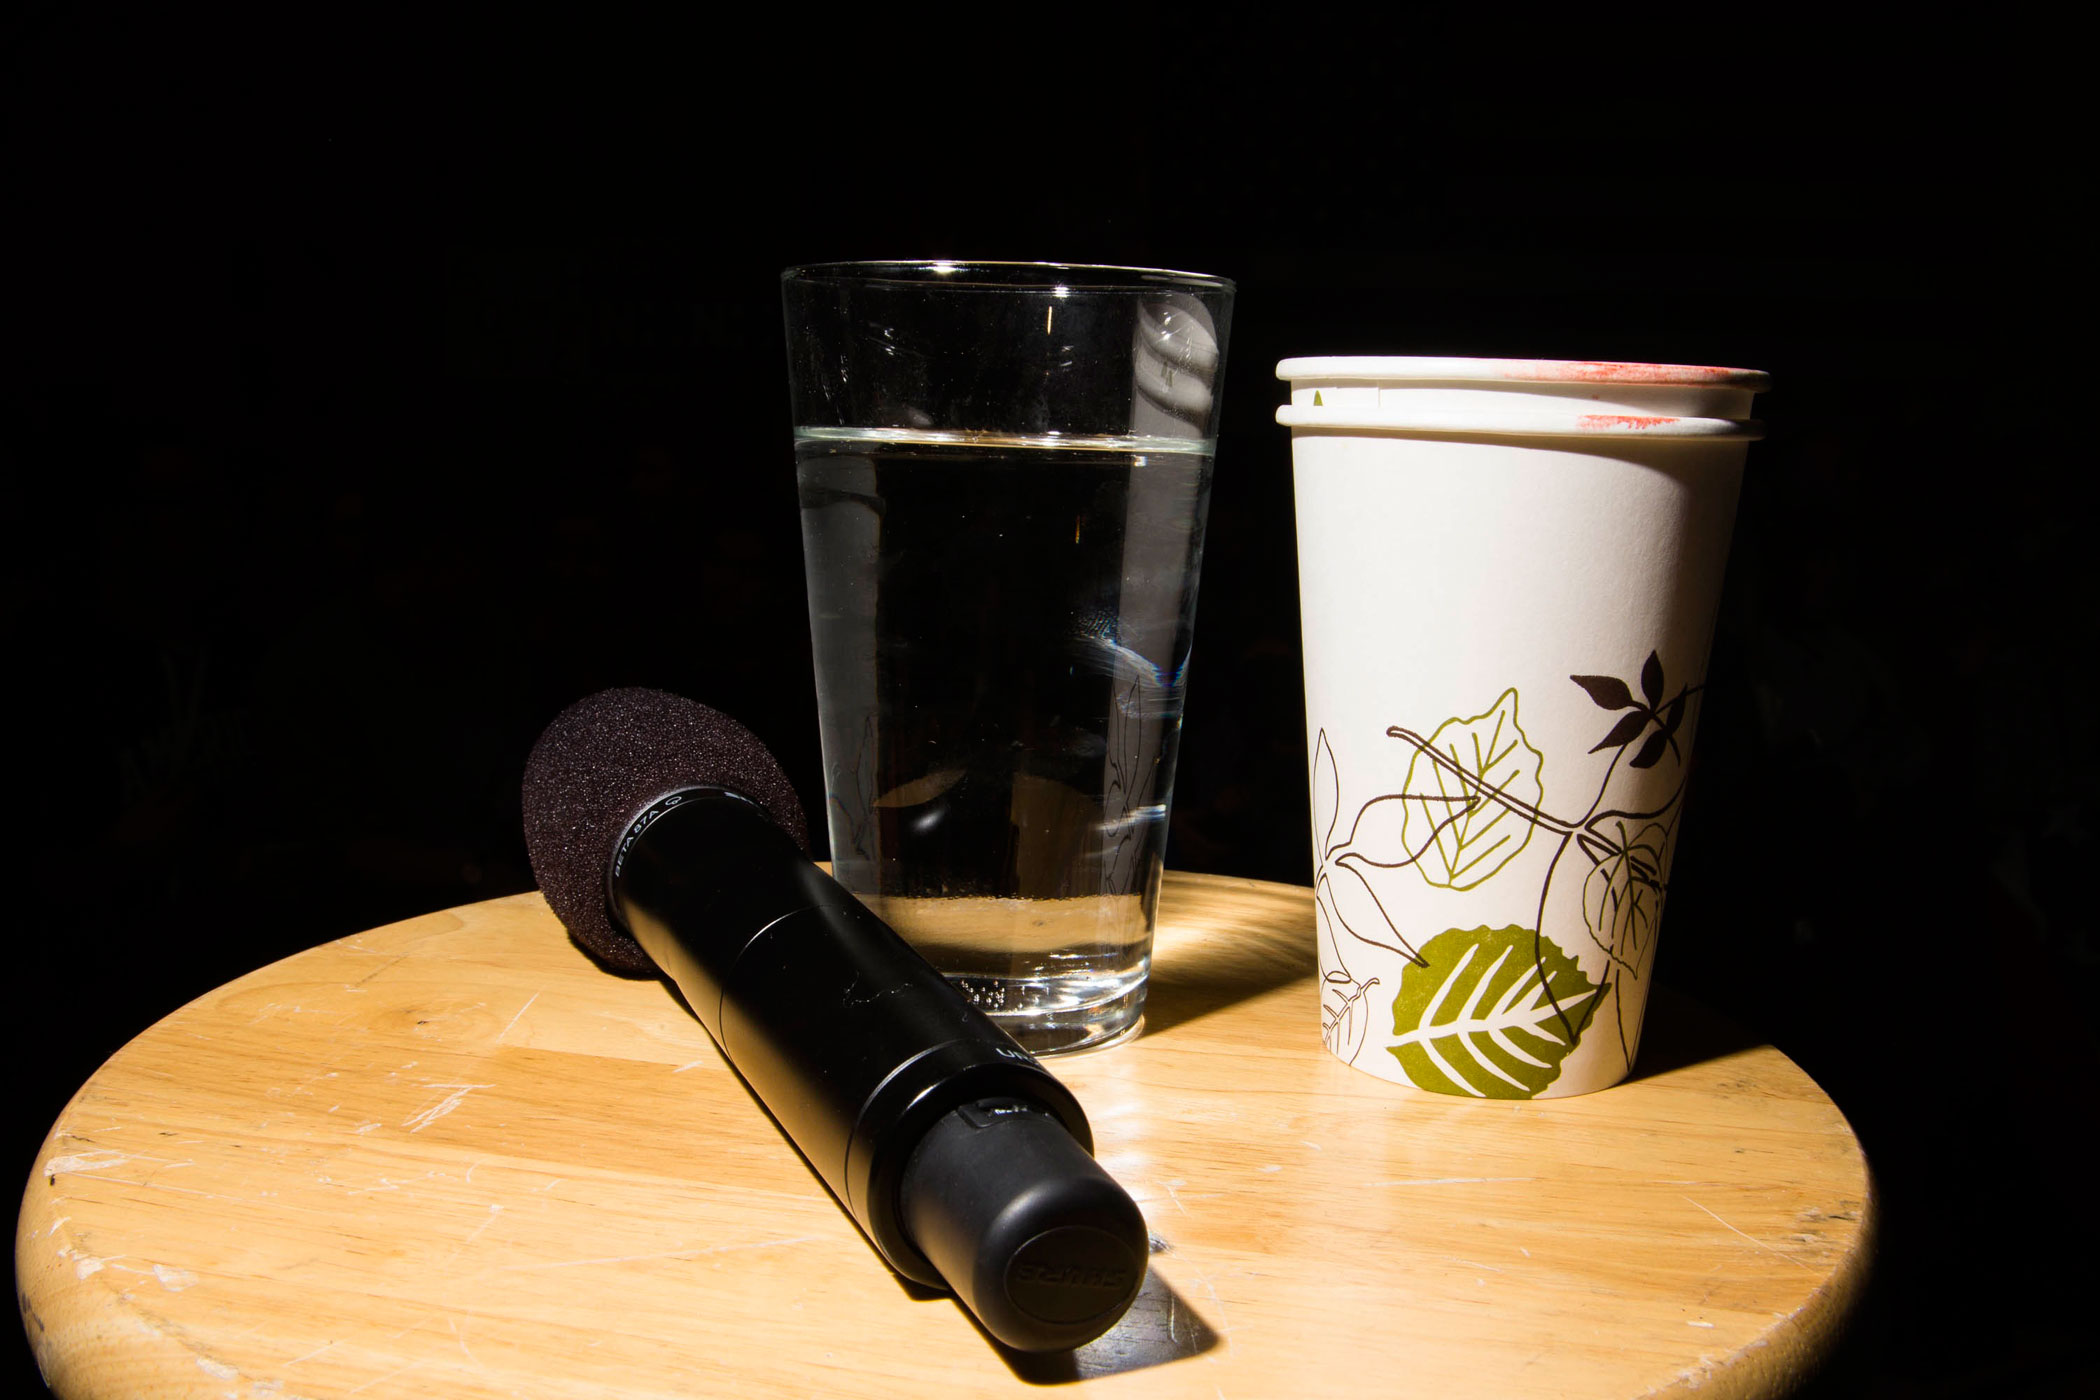 A microphone and glass of water used by former Secretary of State Hillary Clinton are seen at a campaign event at Rundlett Middle School on Feb. 6, 2016, in Concord, N.H.